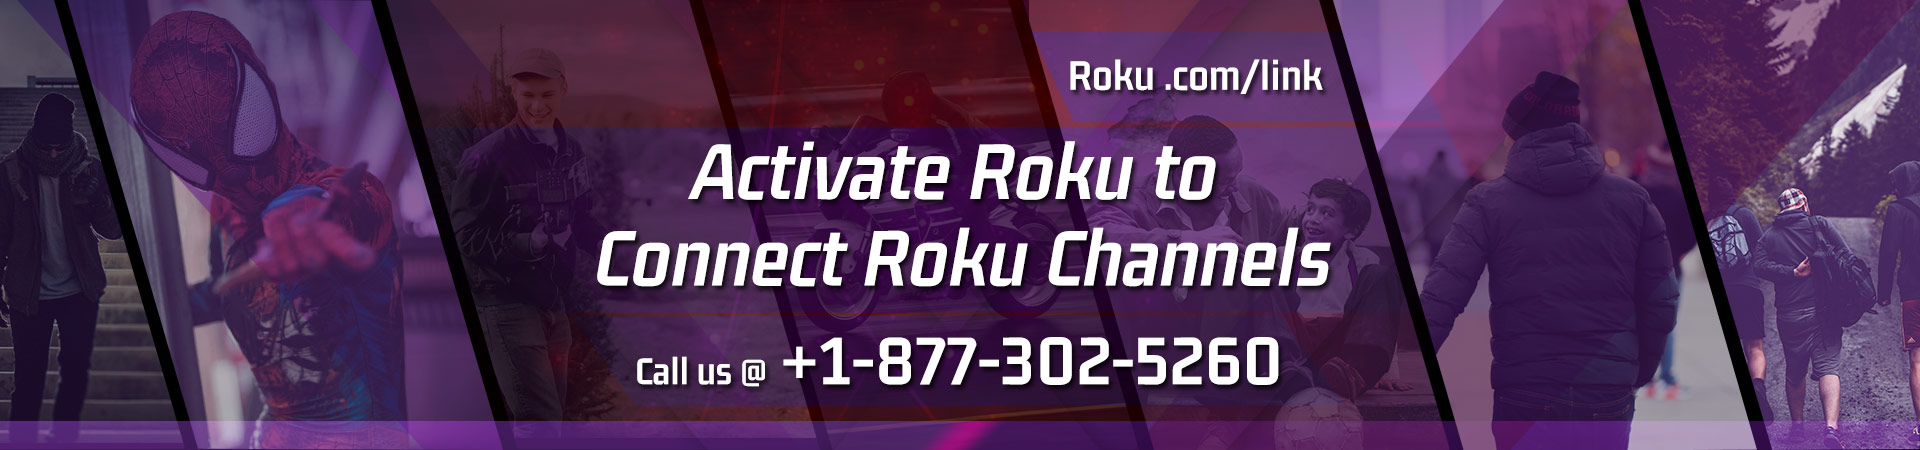 Where can I get Roku support?